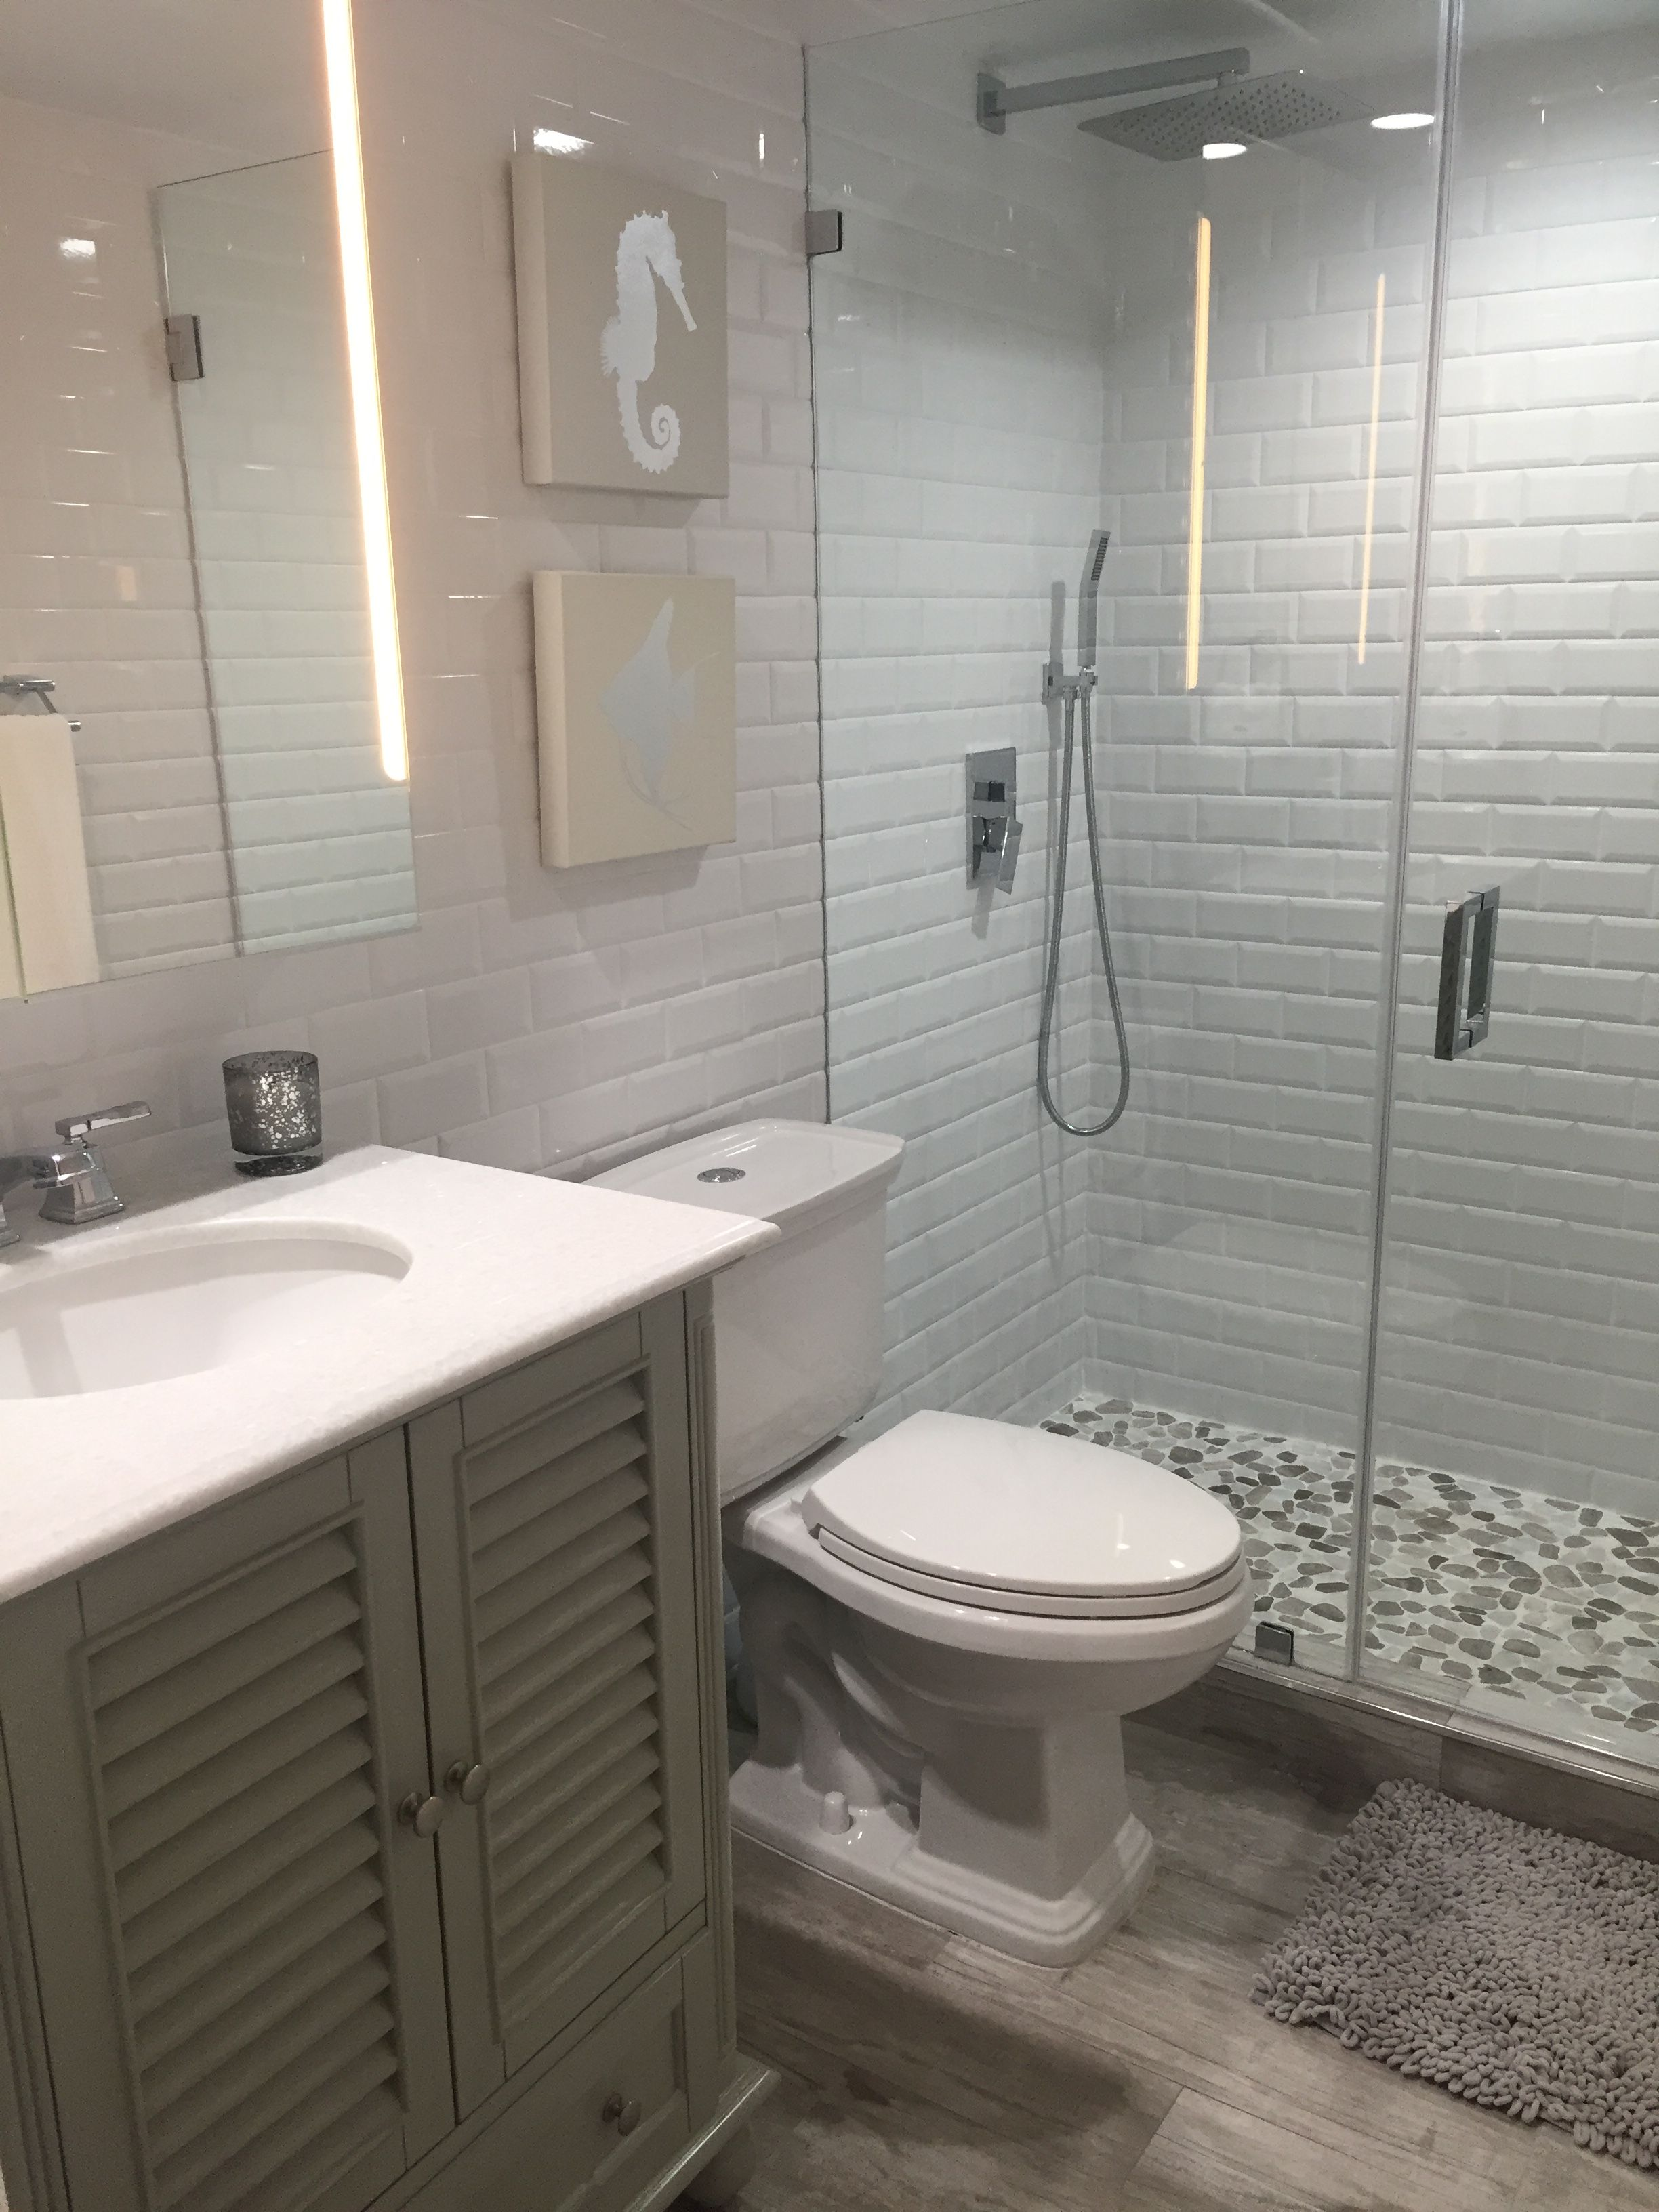 Madison bathroom remodel contractors, Madison bathroom remodeling, Madison bathroom remodeling quote.